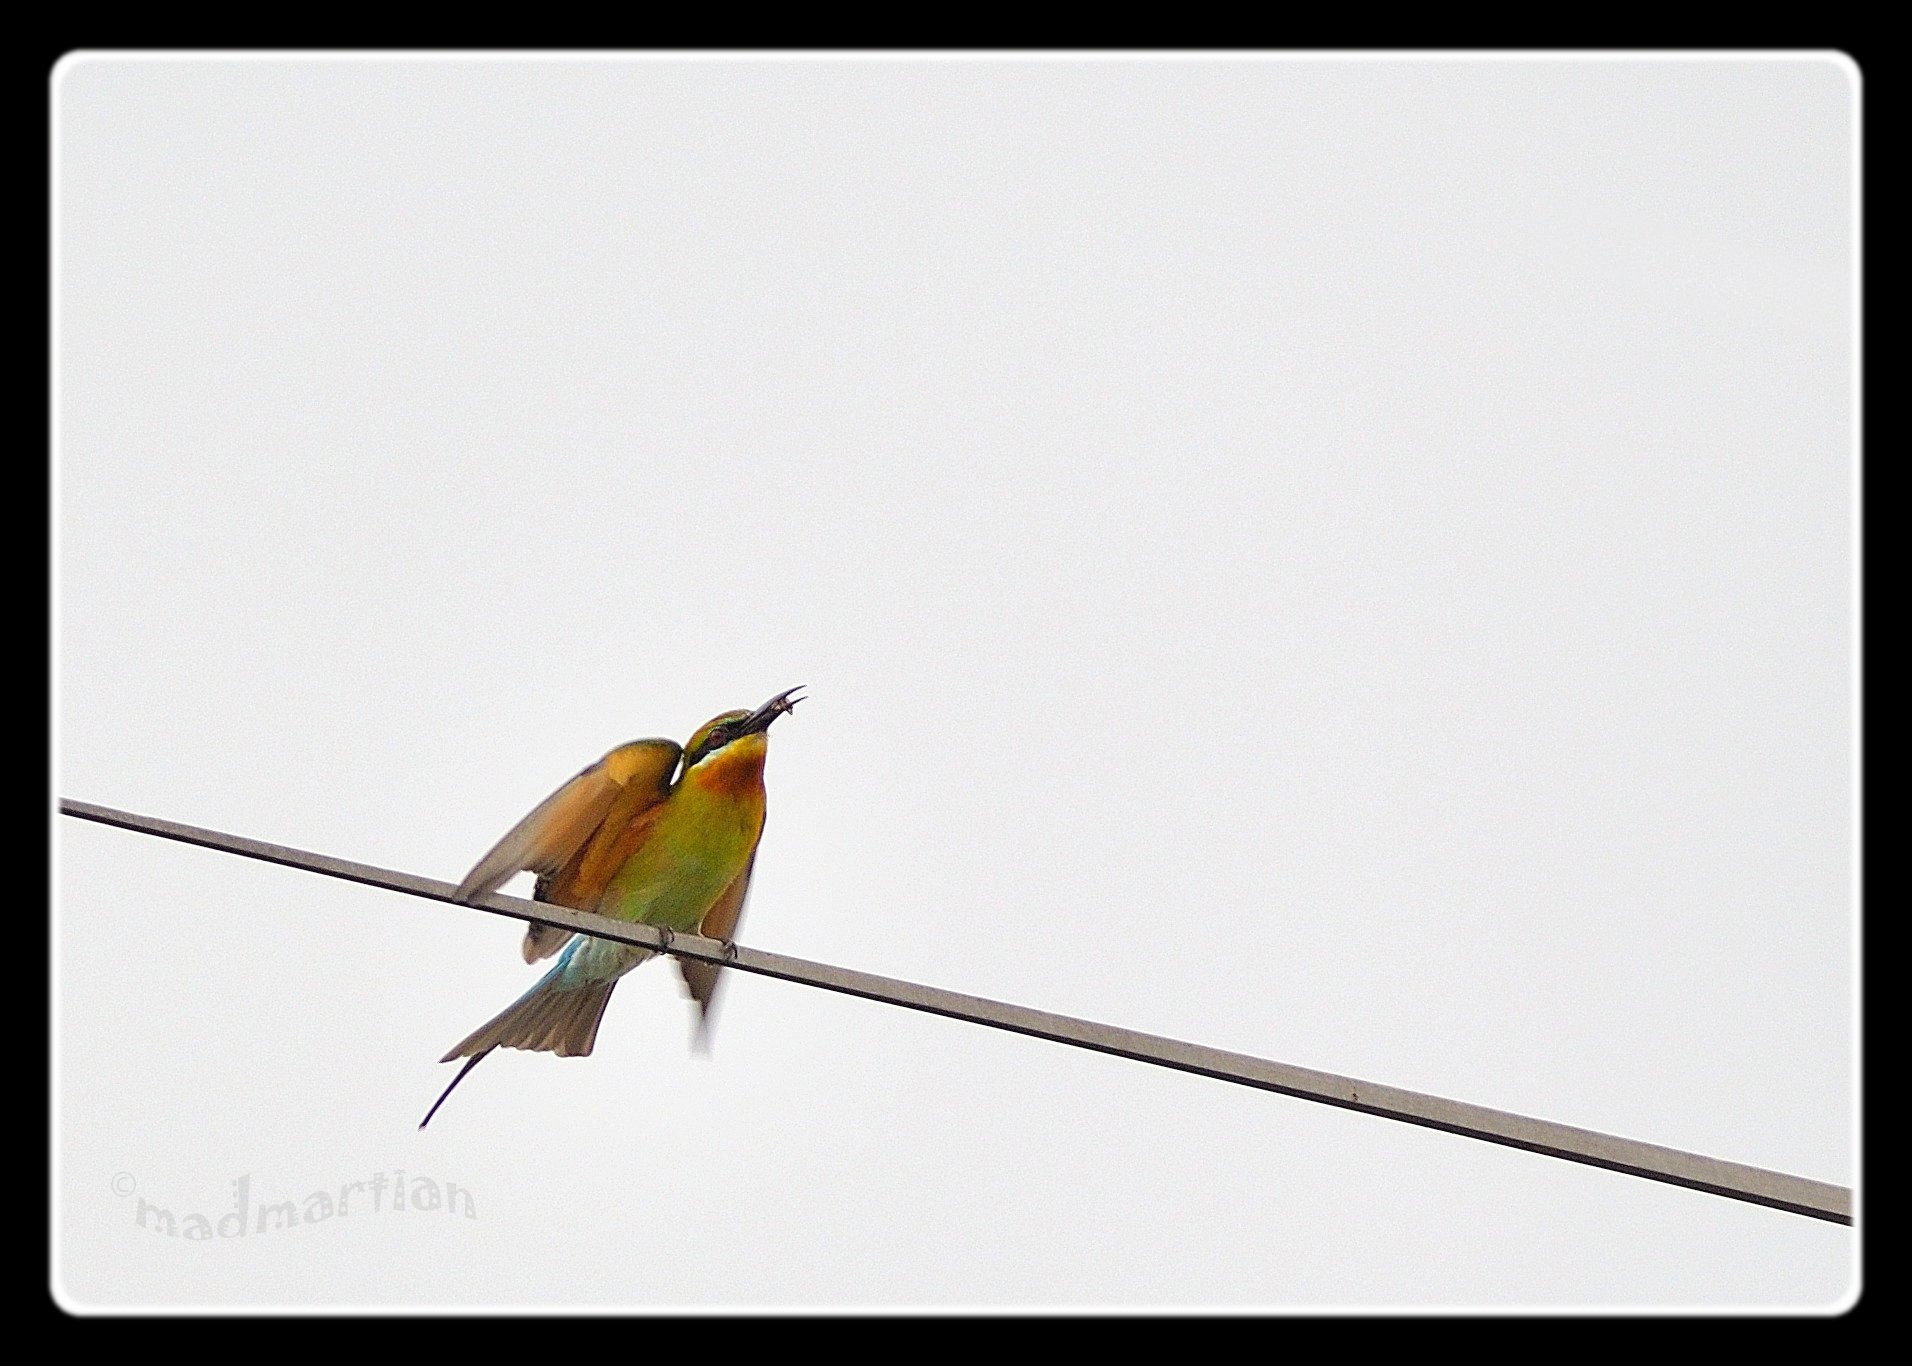 - Blue-tailed Bee Eater 20111108_0006.JPG